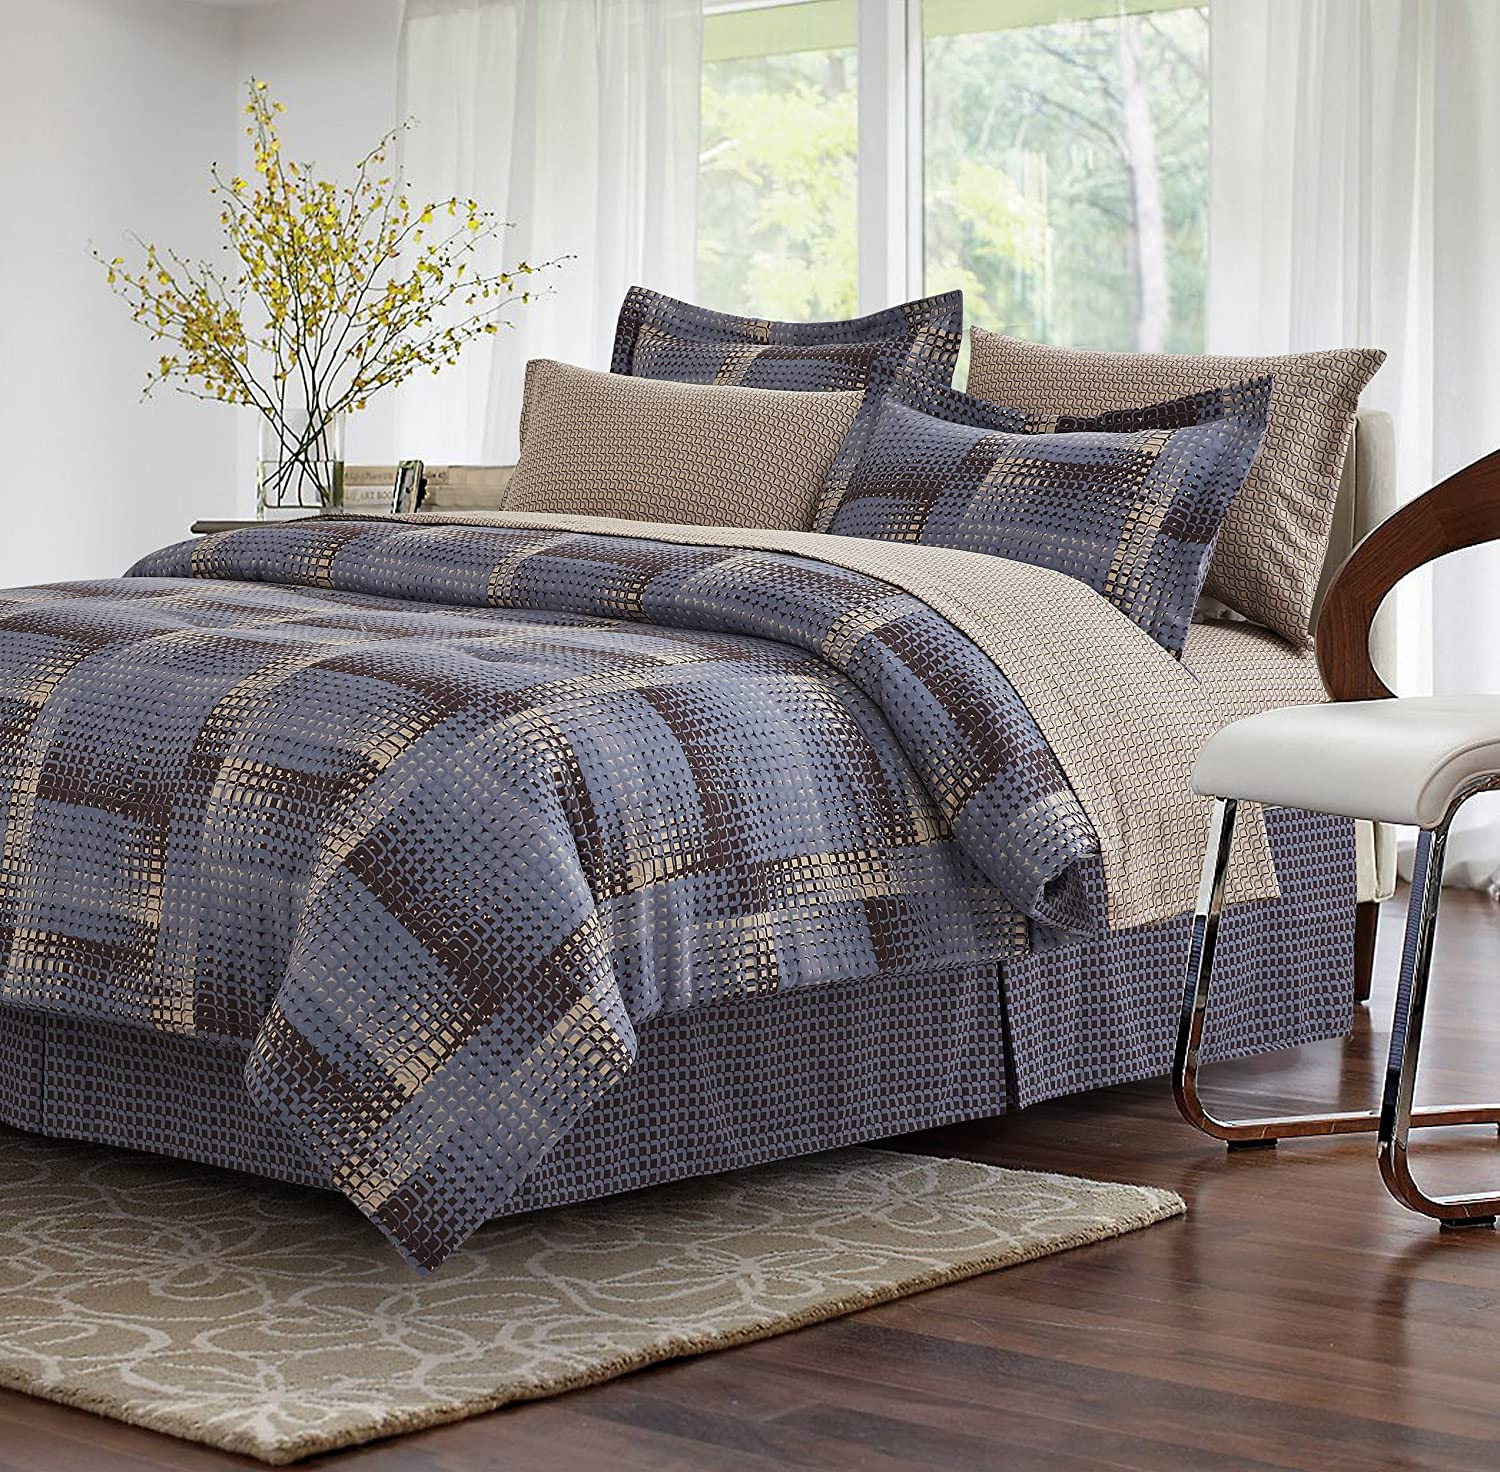 King Brown /& Grey Shadow Box Brown 8-Piece Bed-in-Bag